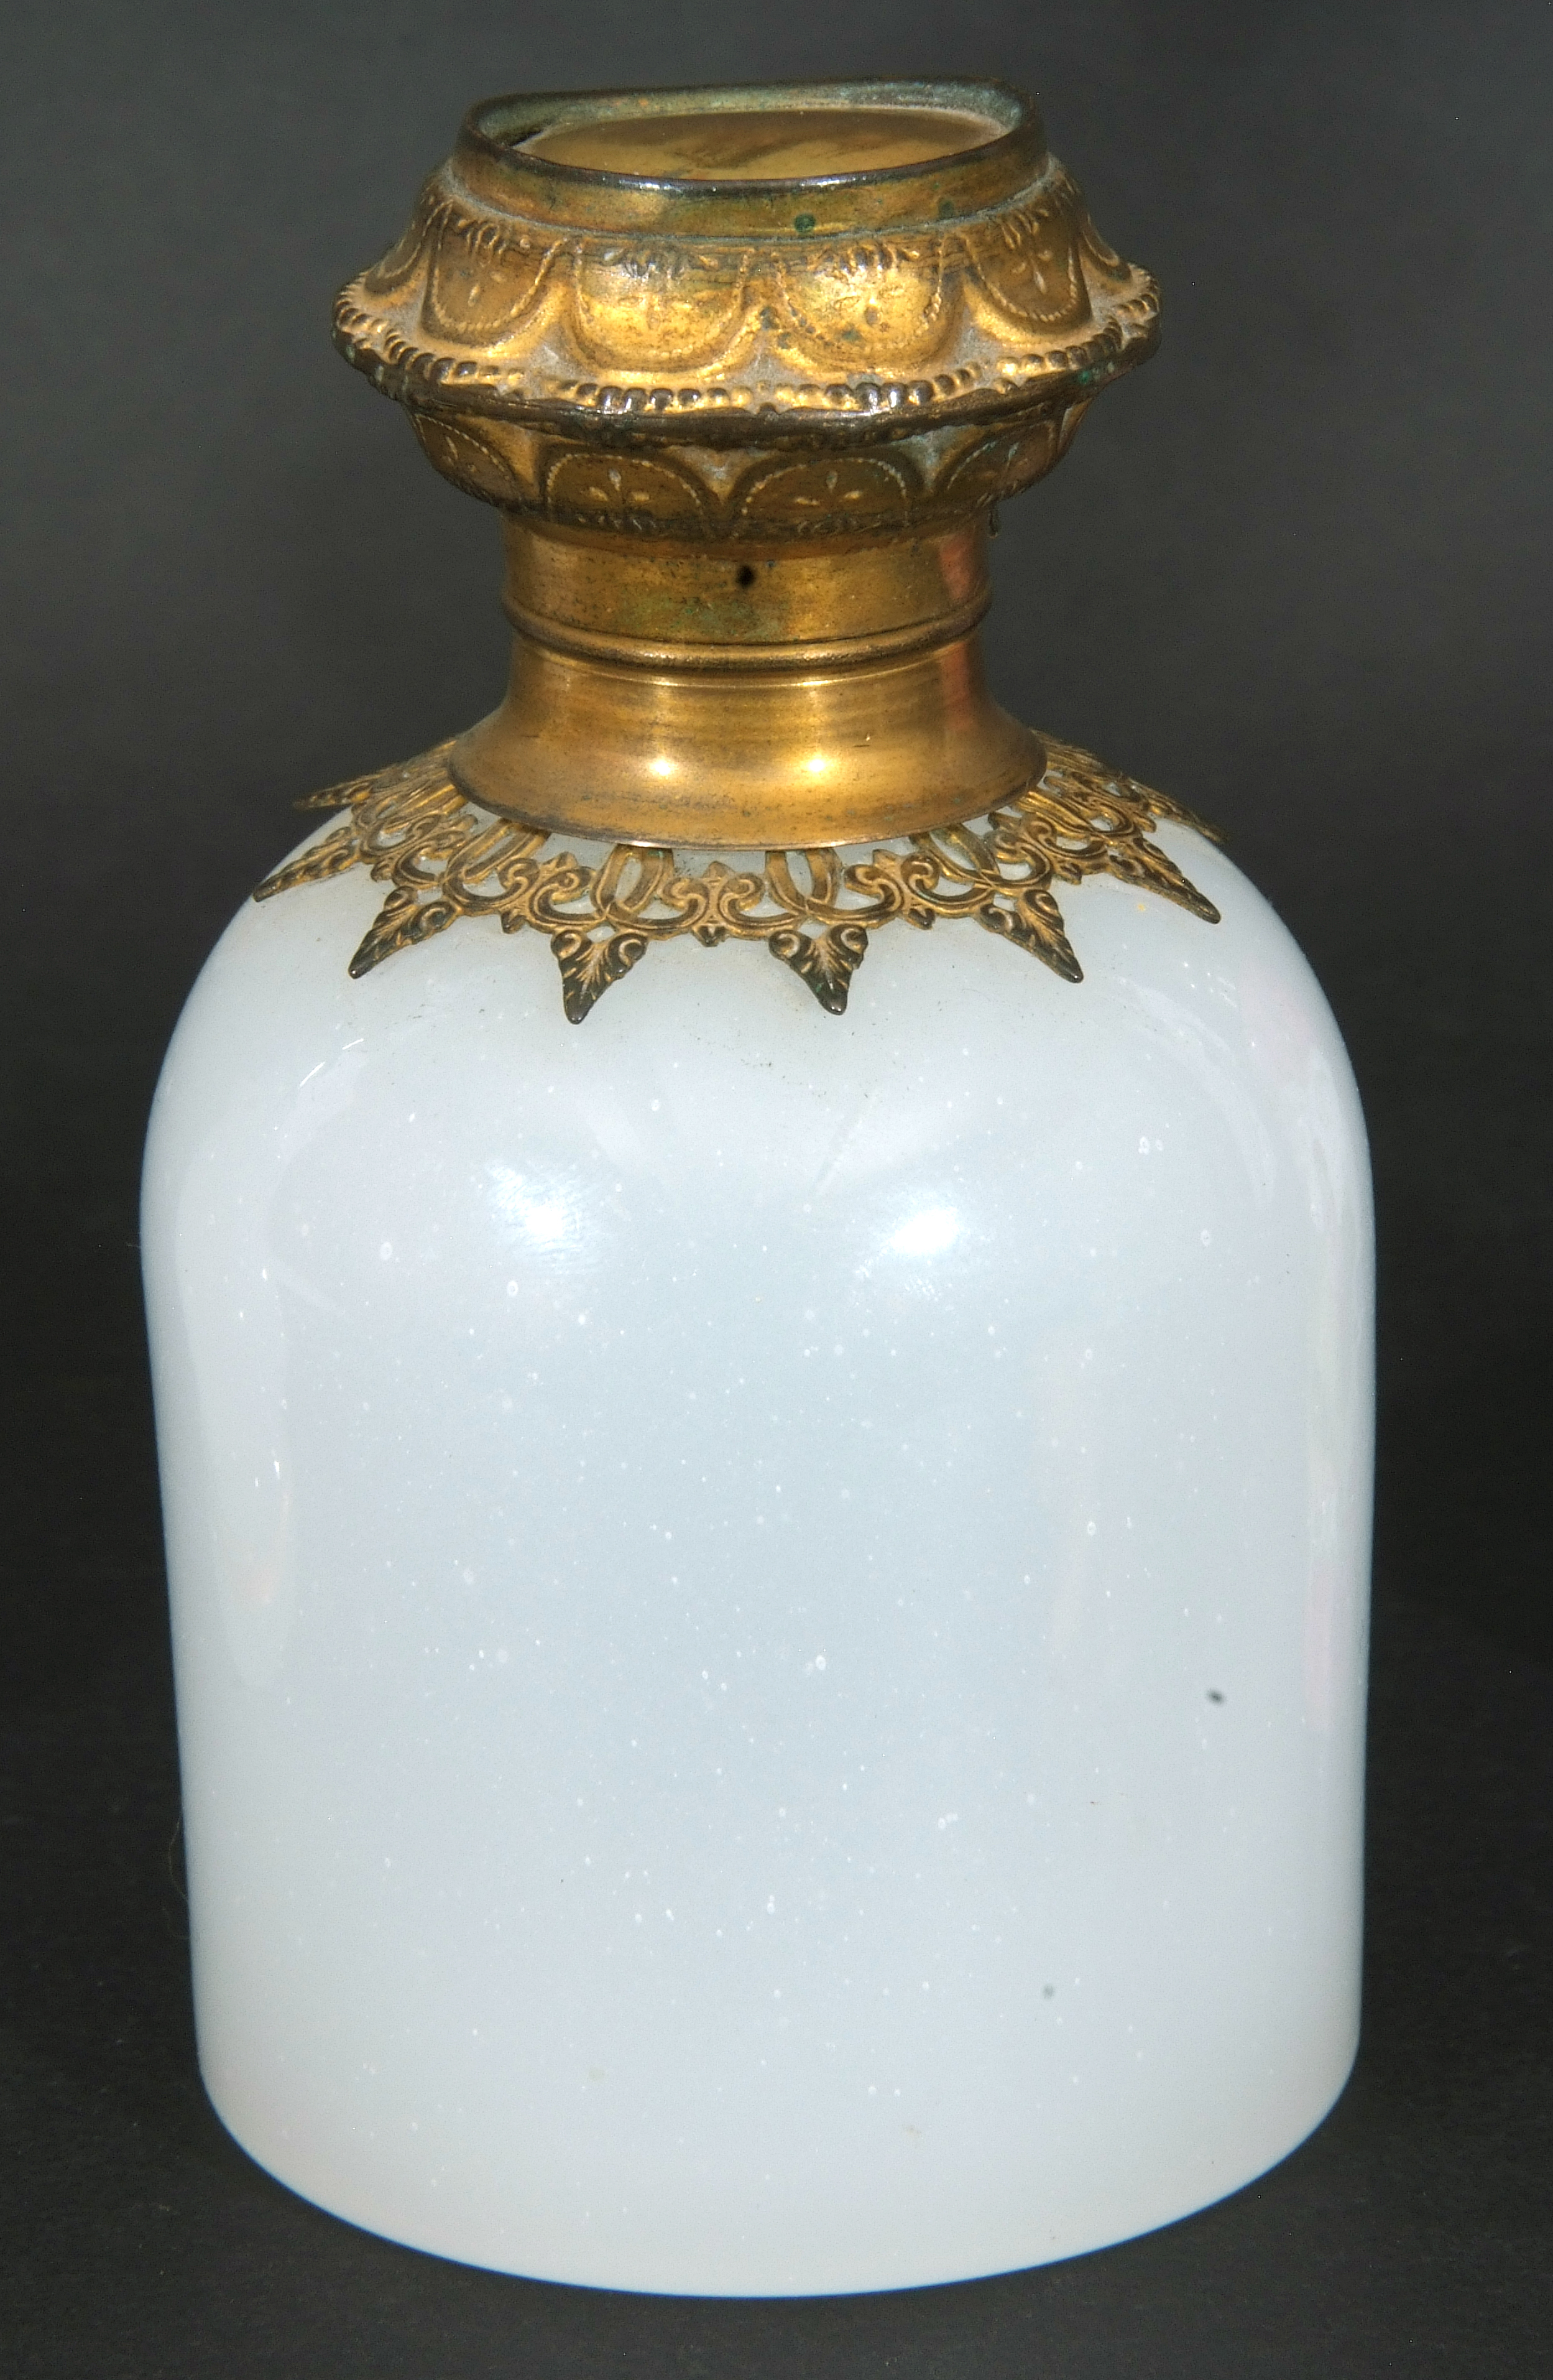 Mixed Lot: 19th century milk glass scent bottle with gilt metal hinged lid with inset to cap, a - Image 7 of 12